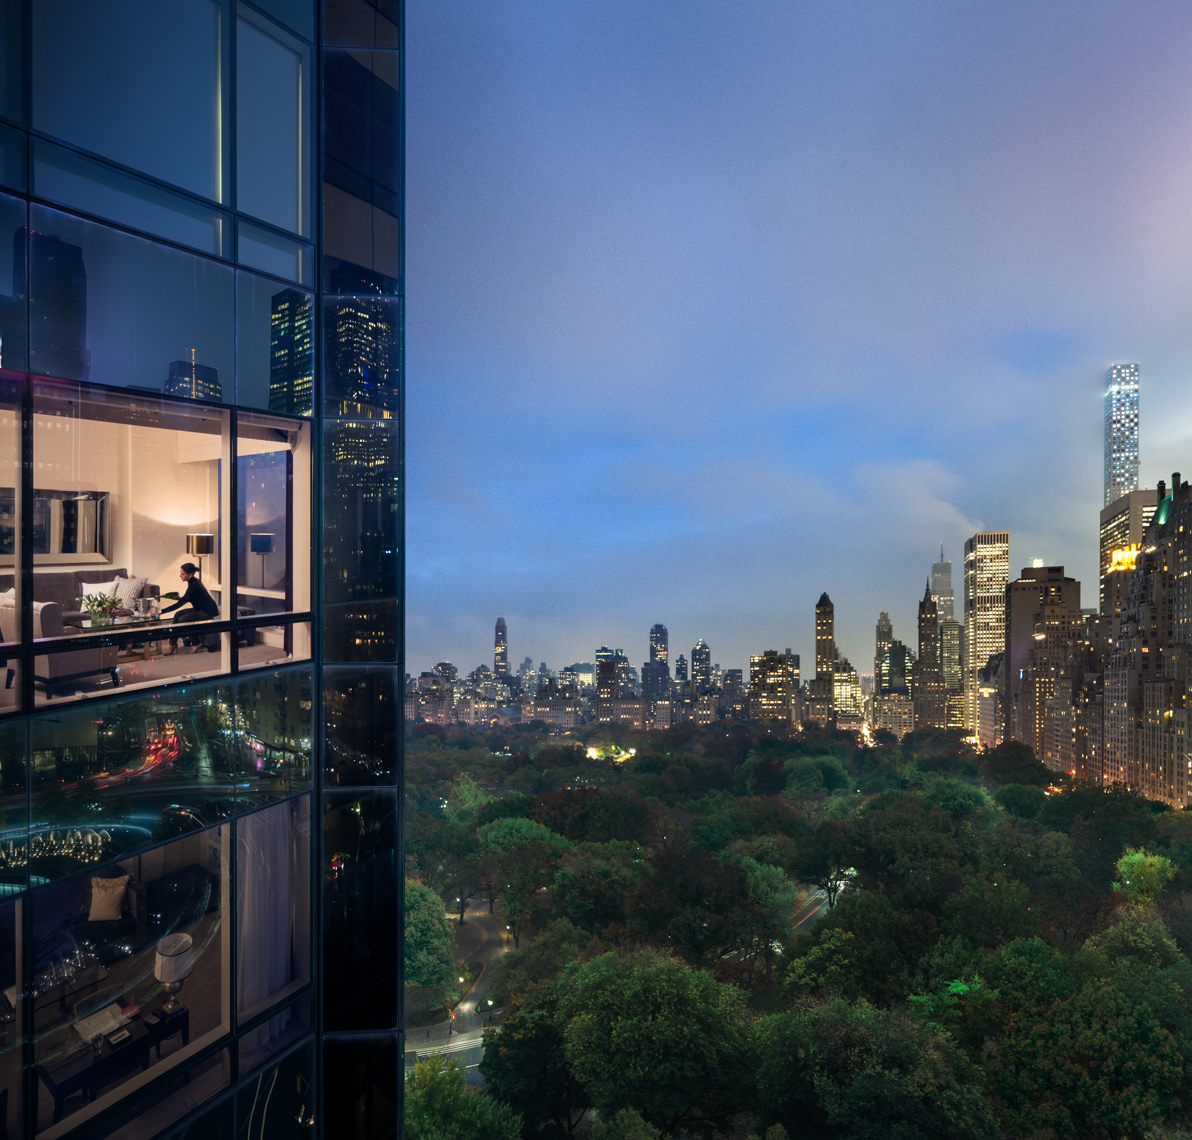 Central Park, Dusk Views, NYC Skyline, Luxury Hotel